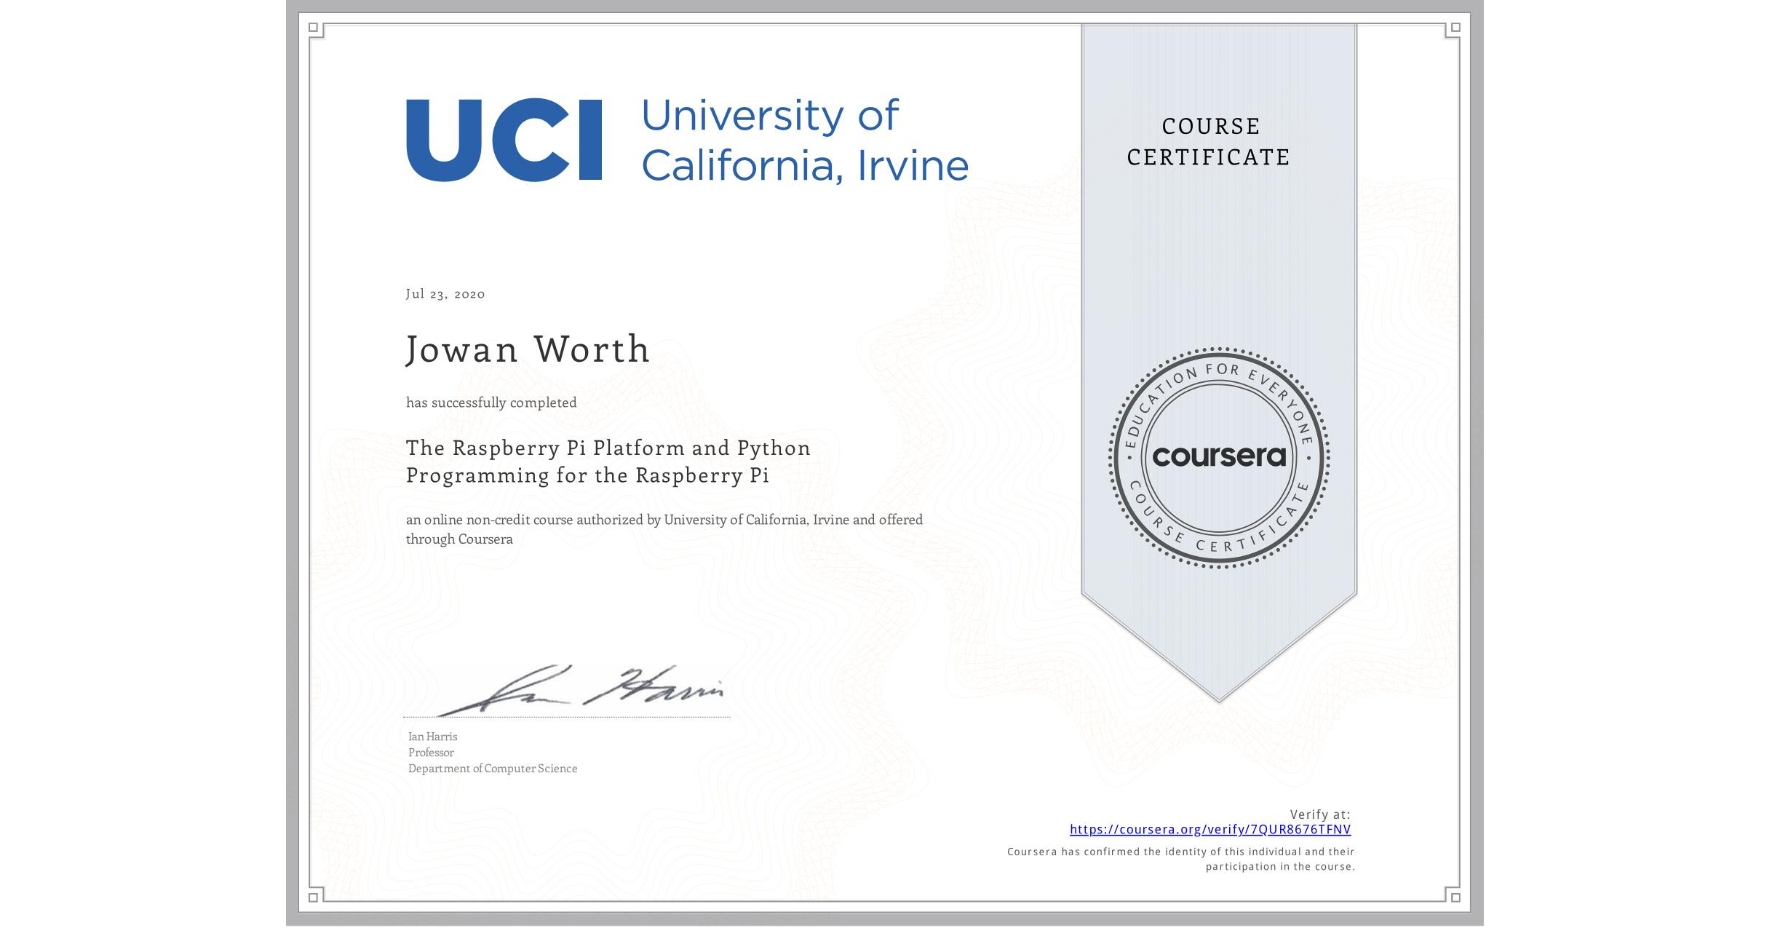 View certificate for Jowan Worth, The Raspberry Pi Platform and Python Programming for the Raspberry Pi, an online non-credit course authorized by University of California, Irvine and offered through Coursera